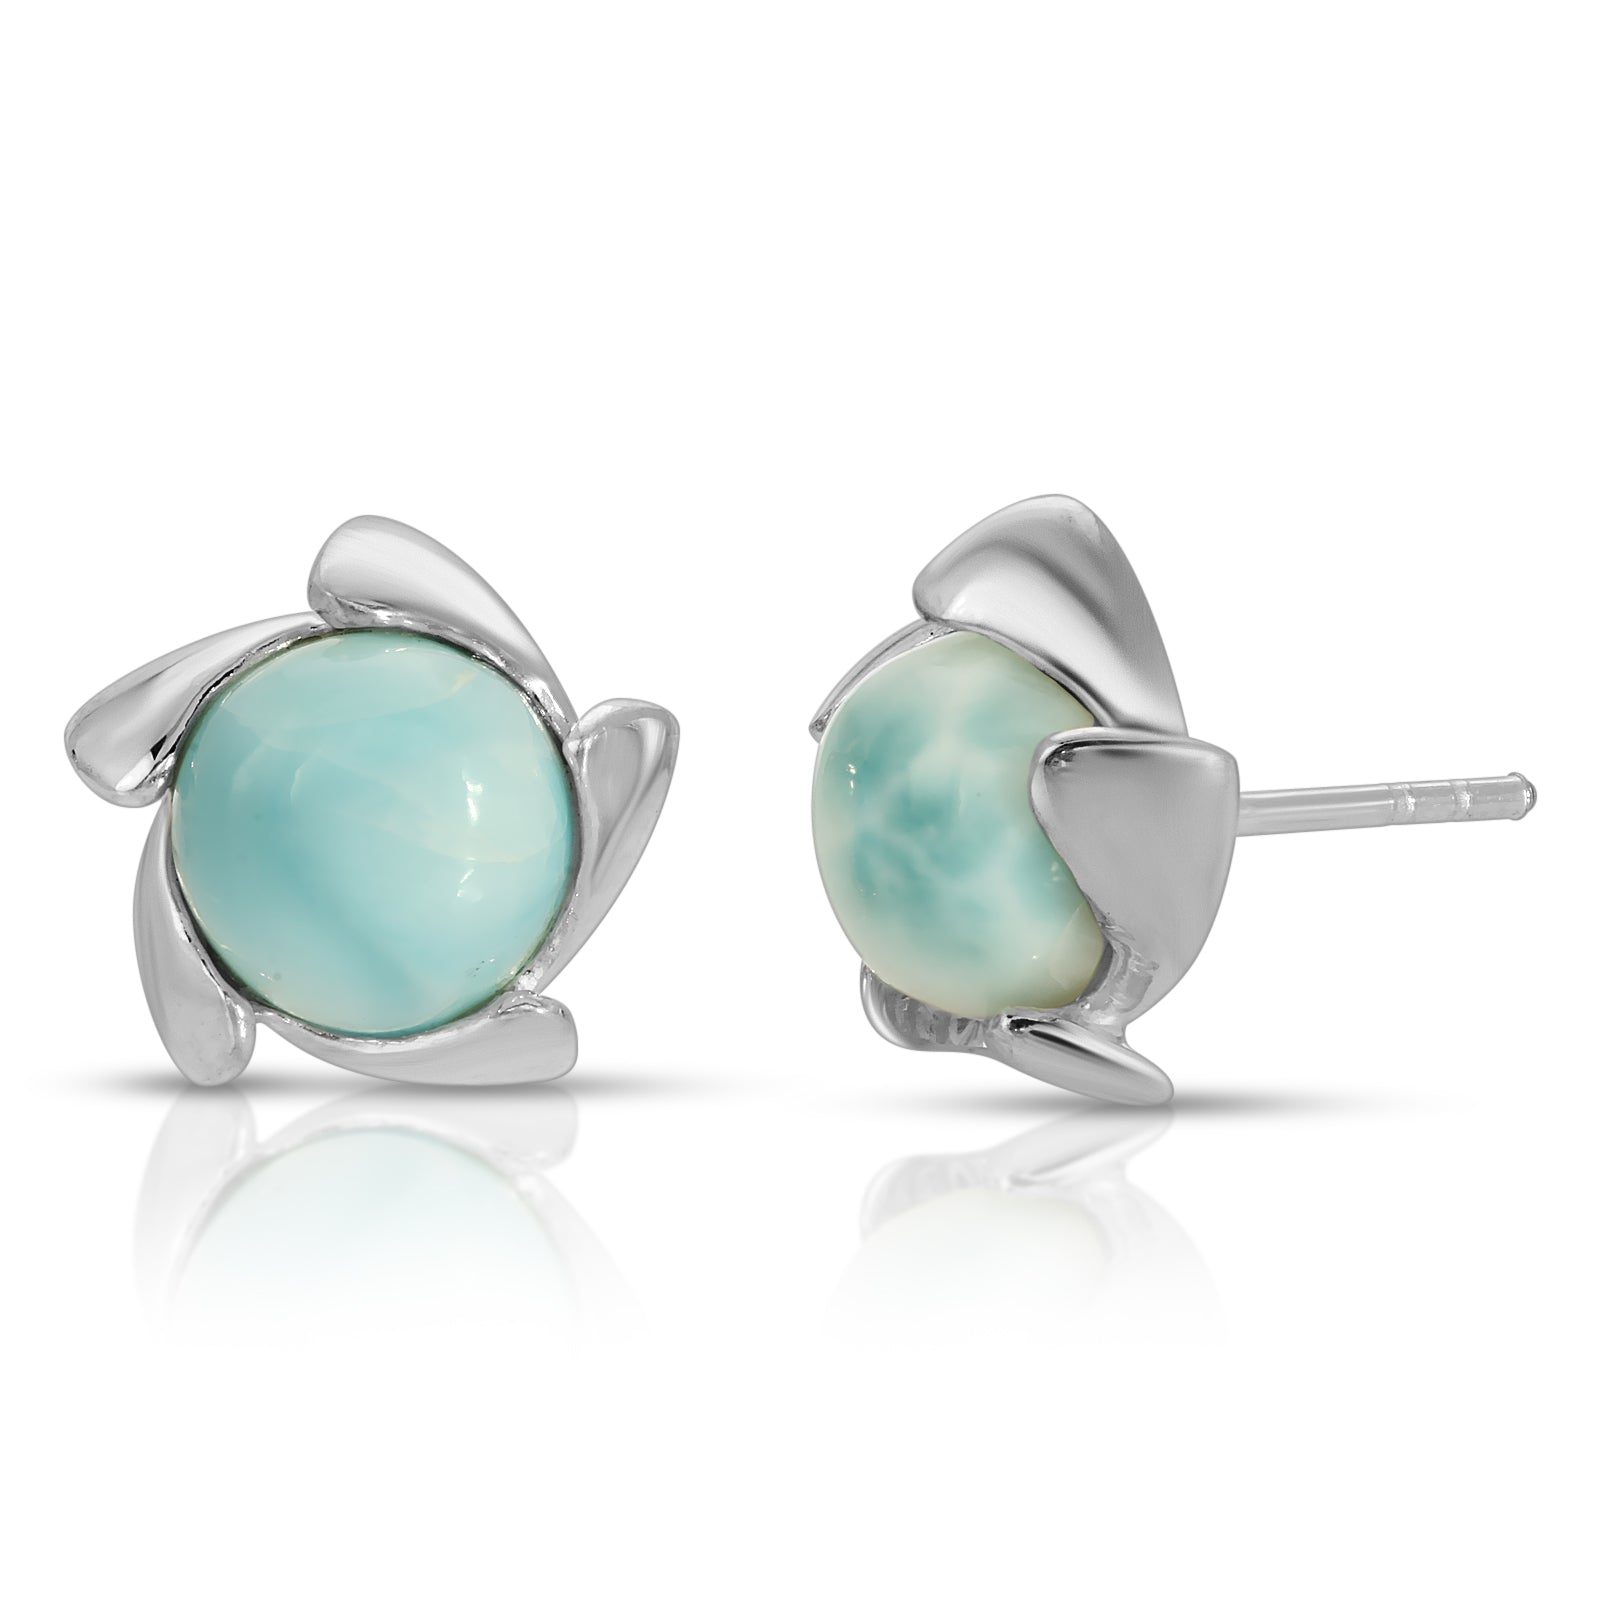 The W Brothers Vortex Larimar Gemstone Earrings crafted from premium Grade A 925 Sterling silver Material. Naturally sourced and mined Larimar gemstones perfect for women and male fashion accessory. Vintage and modern combine to create a perfect earrings accessory. Available at www.thewbros.com